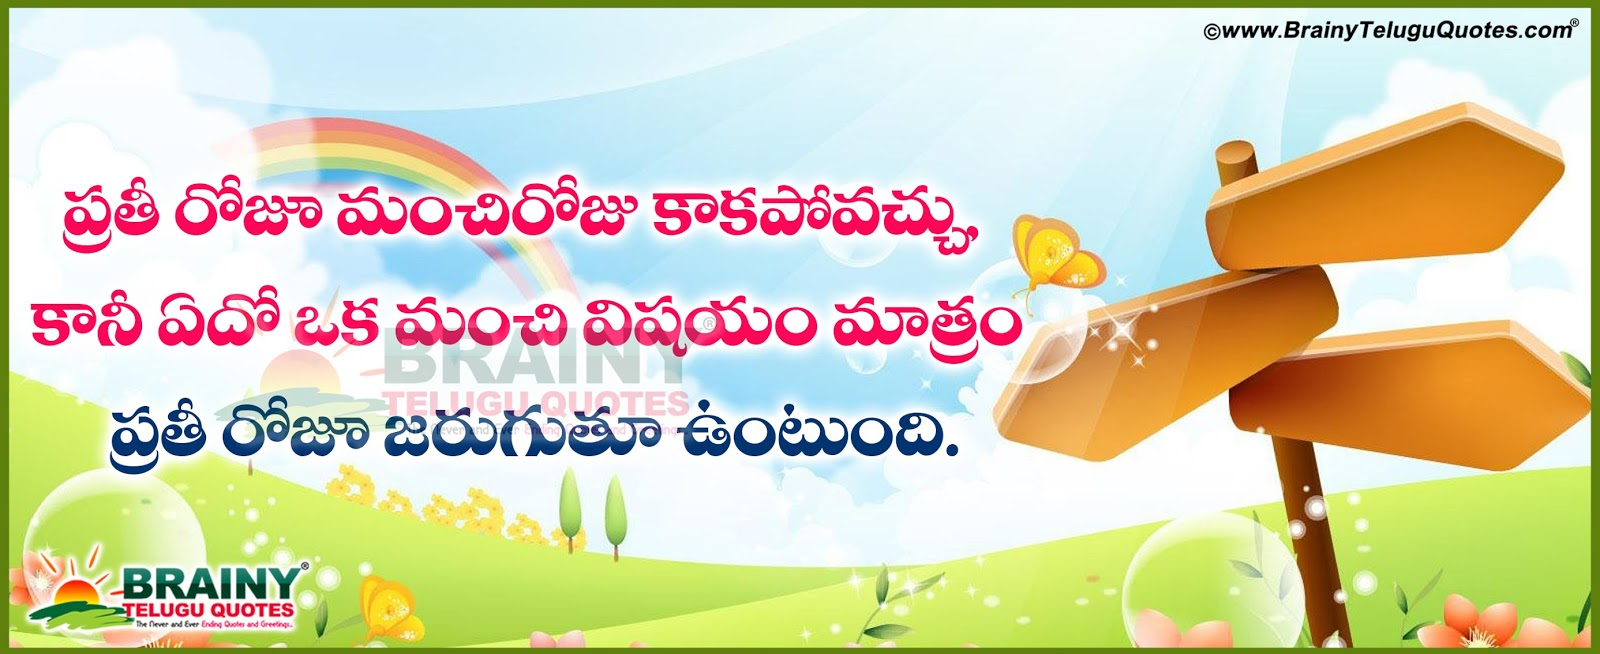 Good Morning Quotes For Facebook Telugu New Good Morning Greetings With Good Results Quotes For Fb